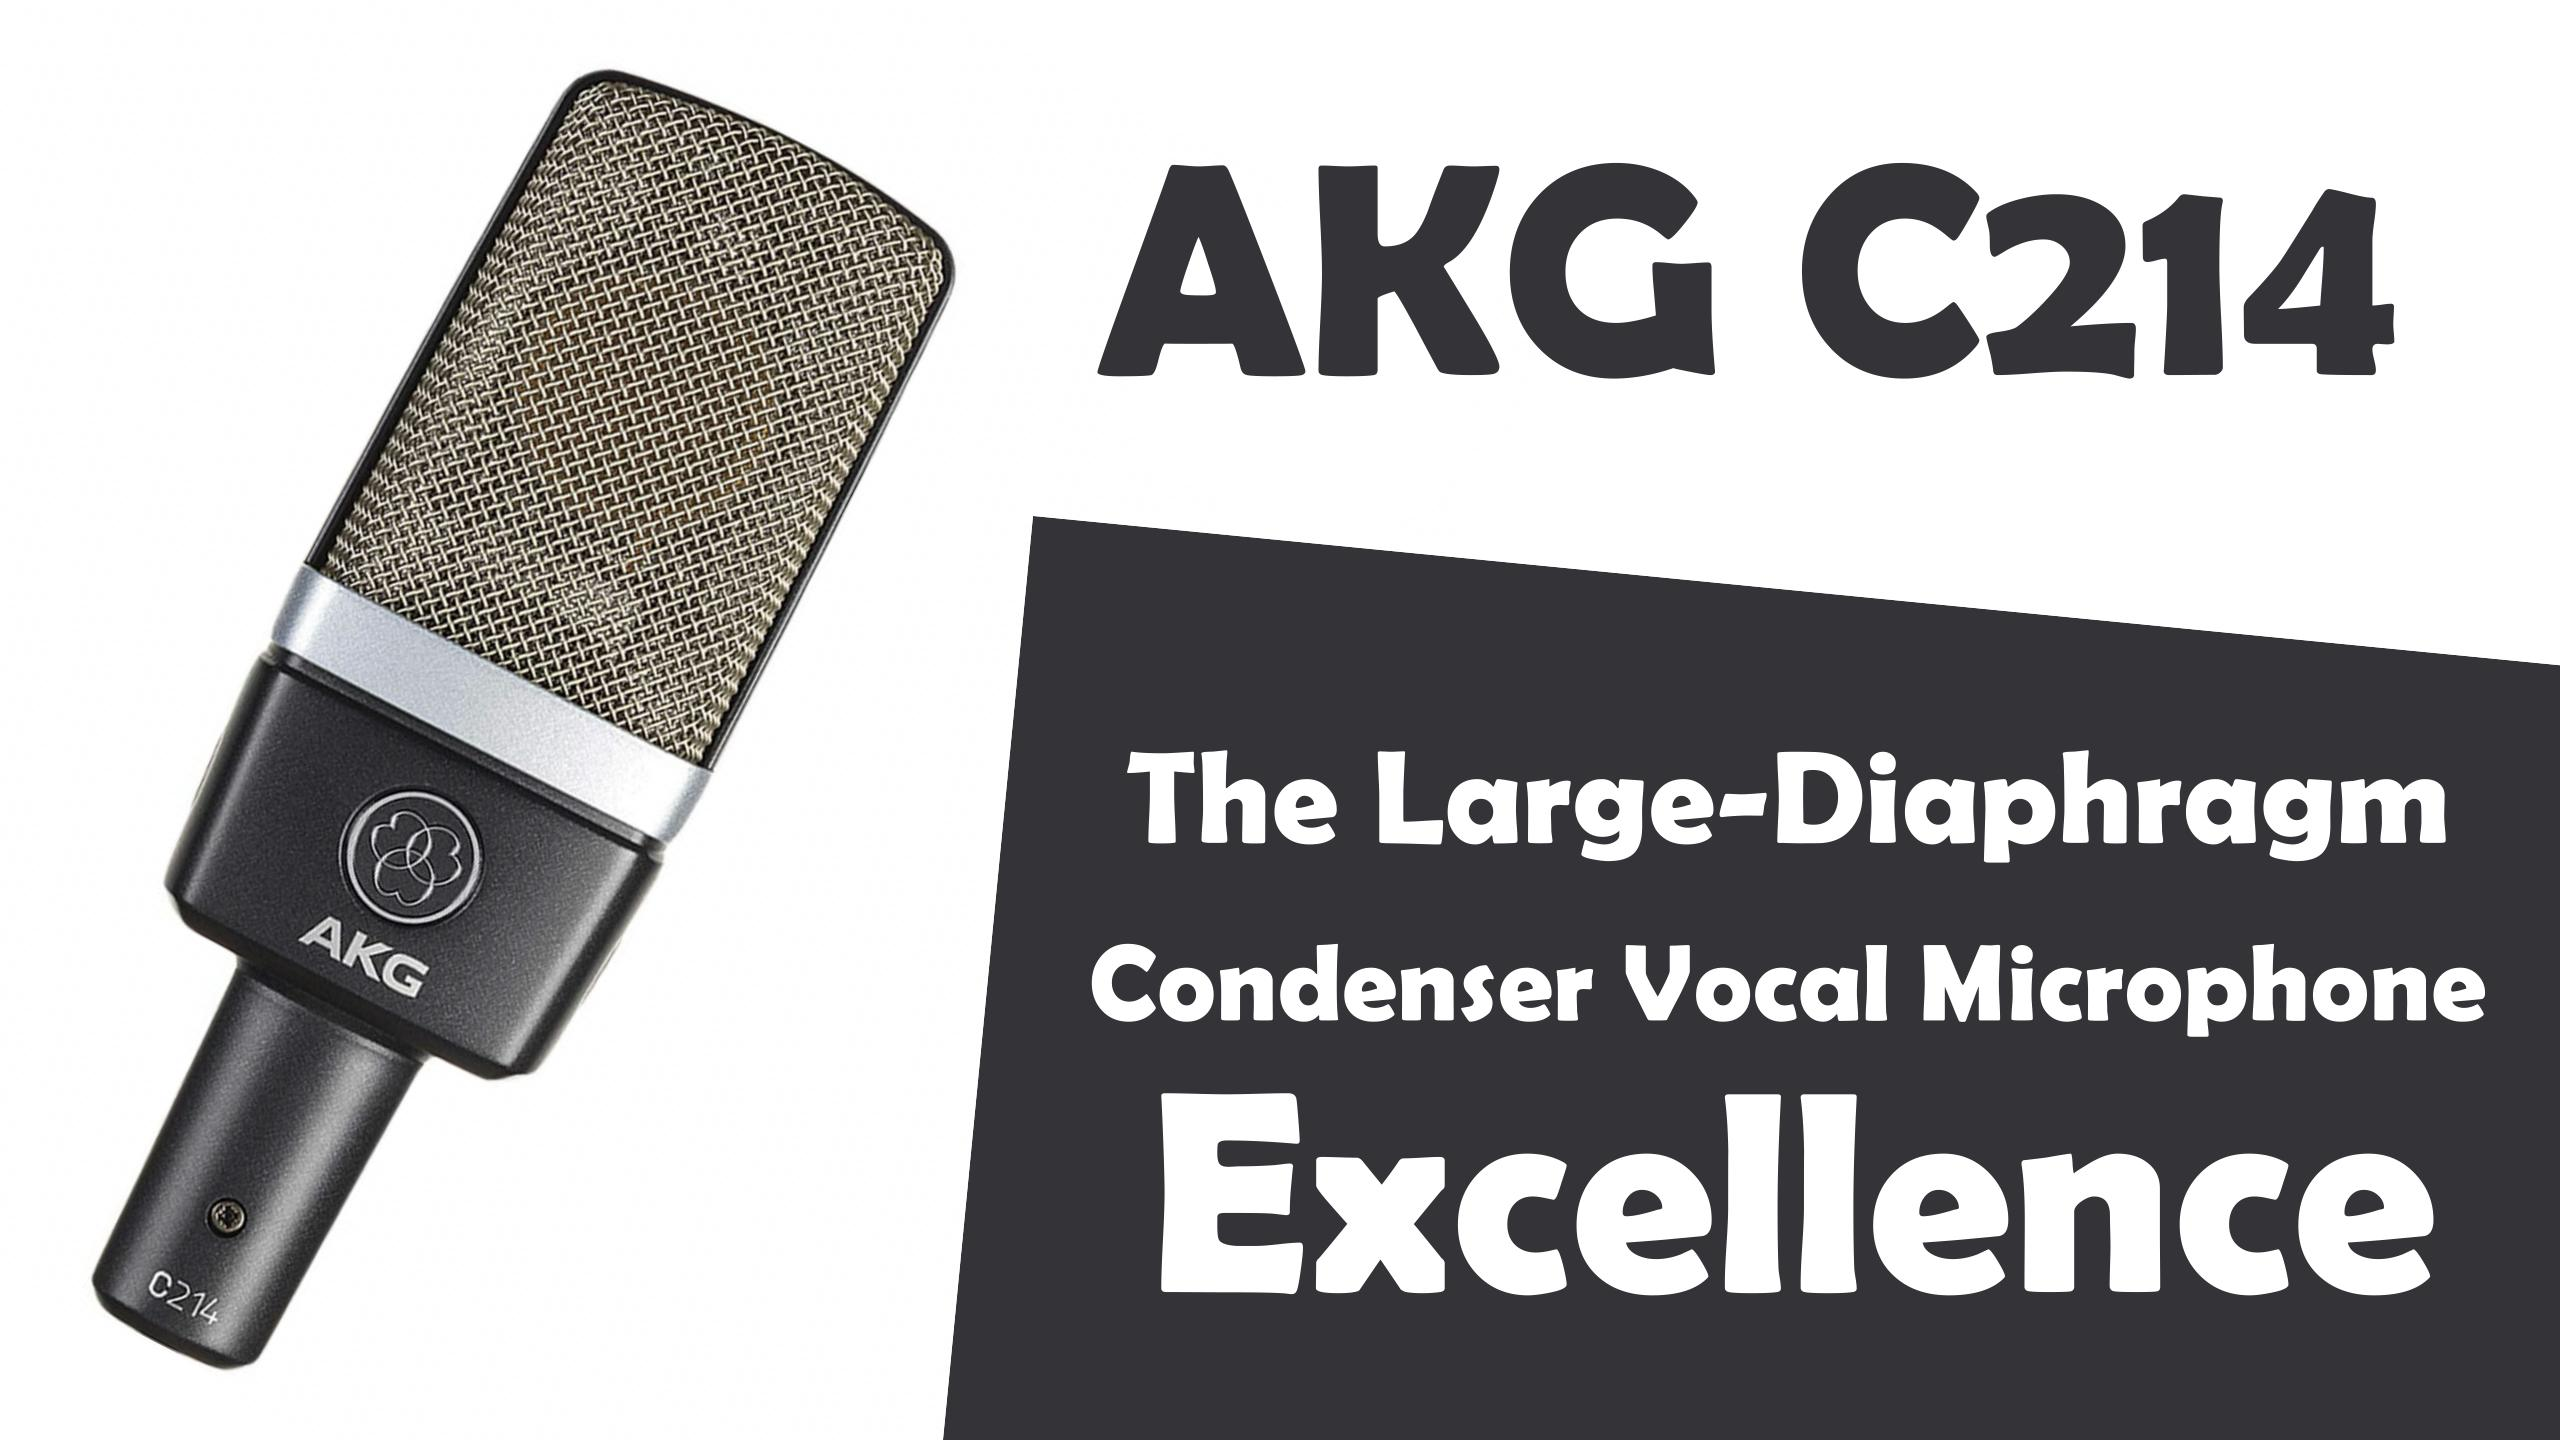 AKG C214 | THE LARGE-DIAPHRAGM CONDENSER VOCAL MICROPHONE EXCELLENCE | The complete review.